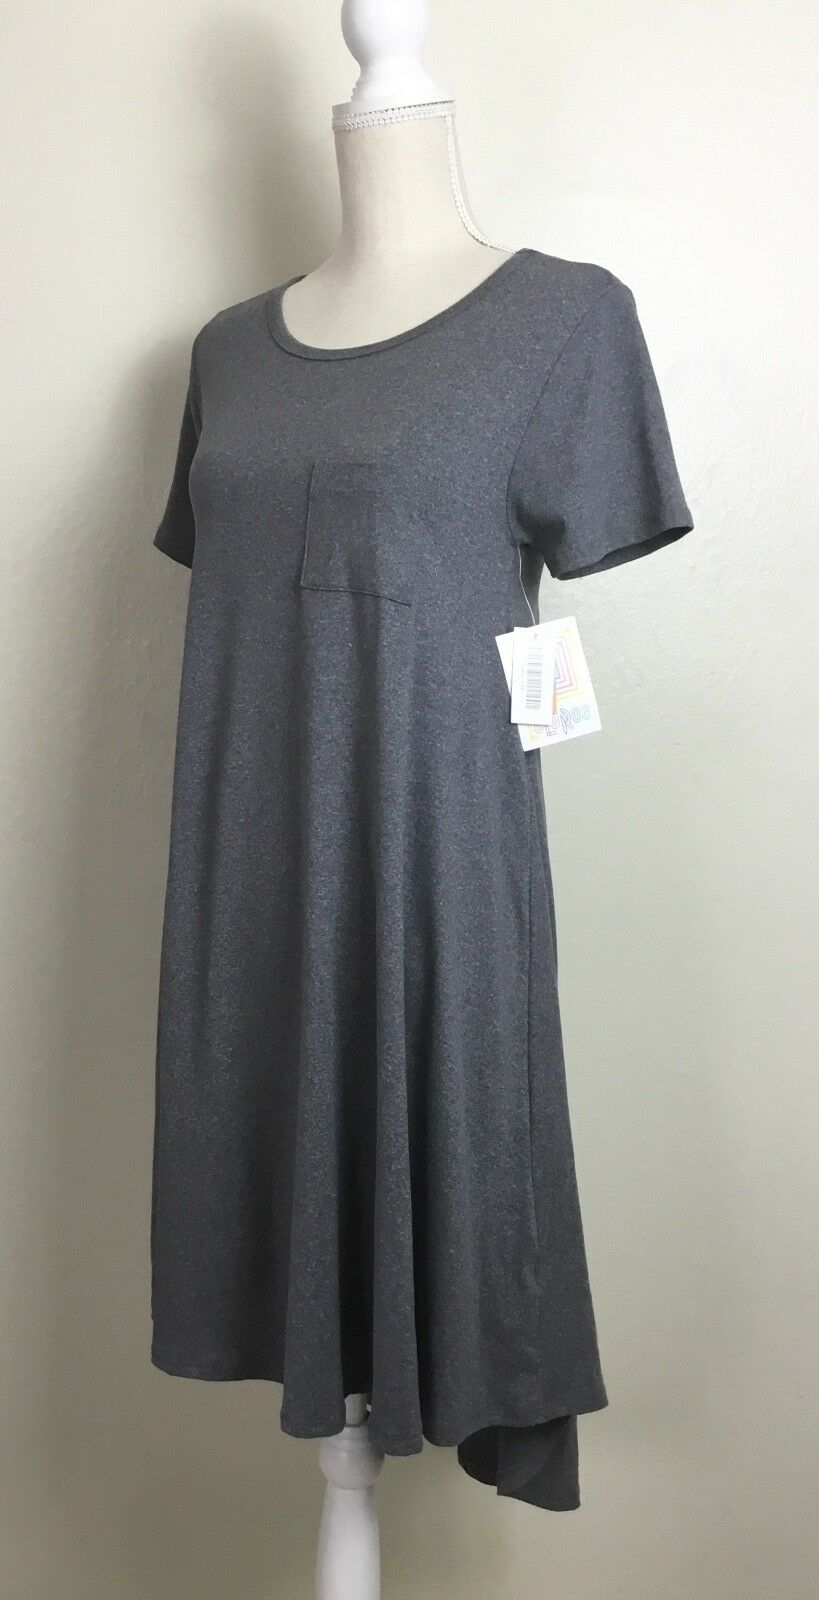 New Lularoe Carly Dress Größe XXS